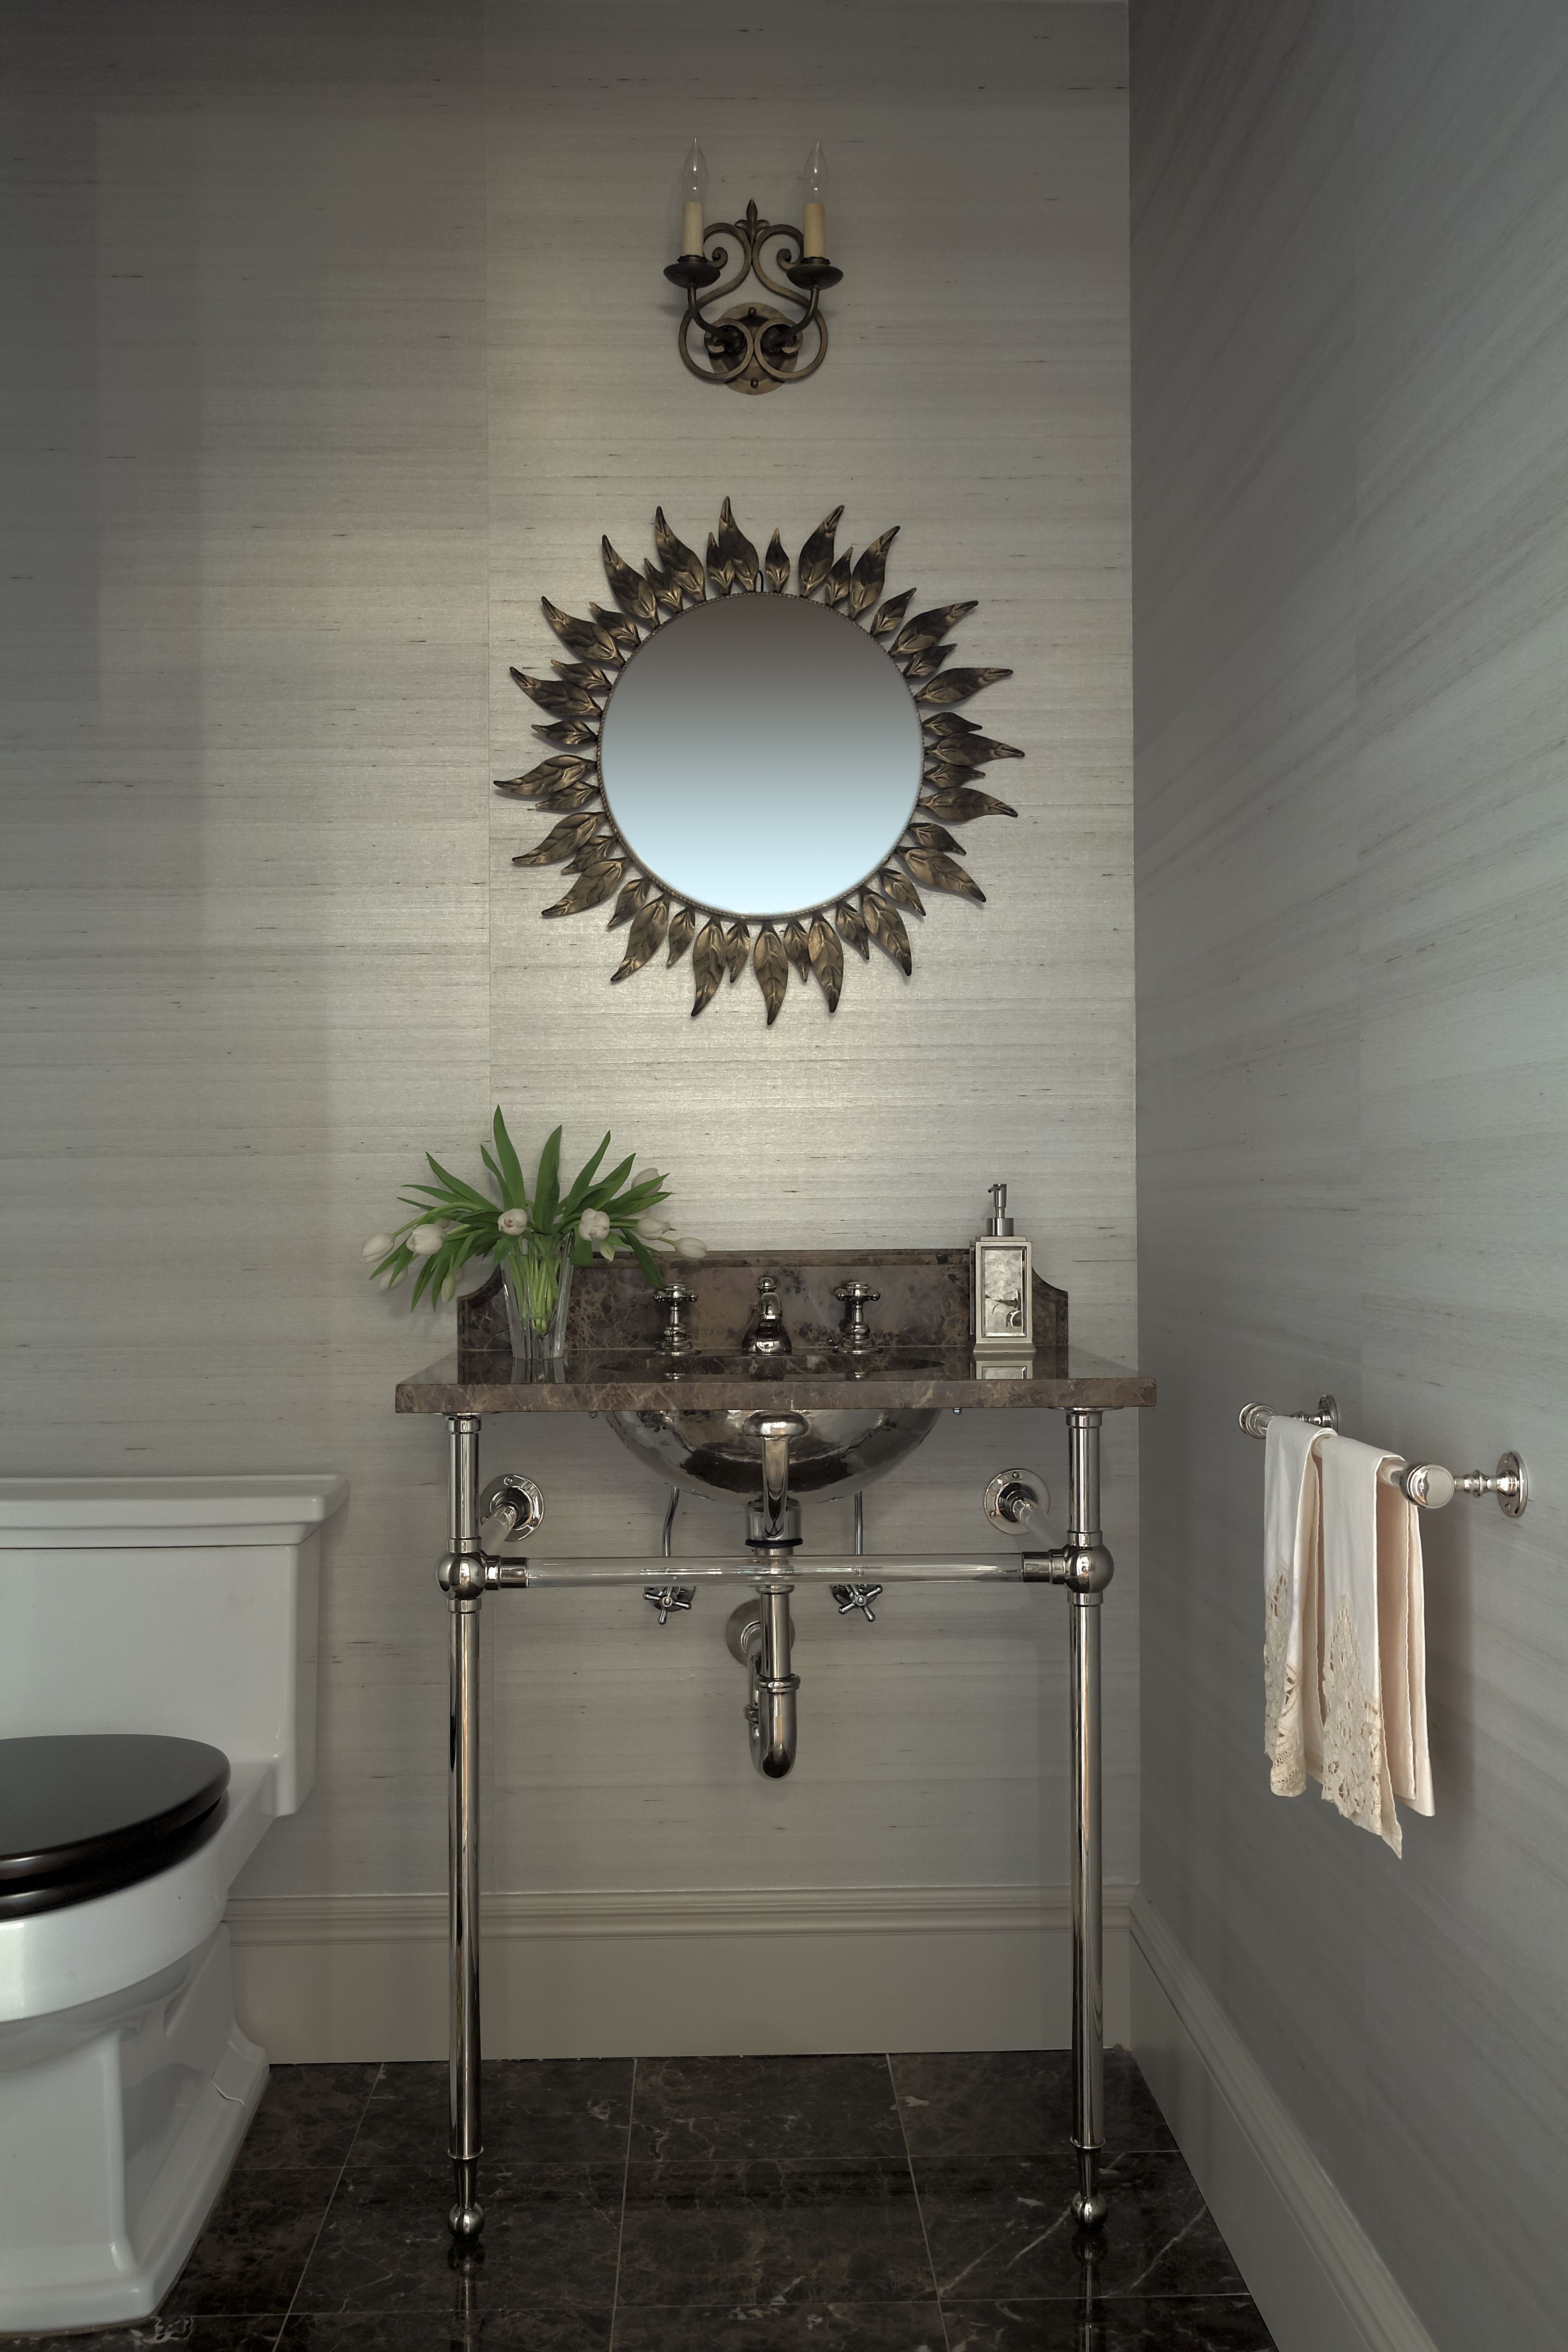 Transitional Bathroom | Designed by Pier, Fine Associates | To explore more of our projects, visit www.pierfine.com